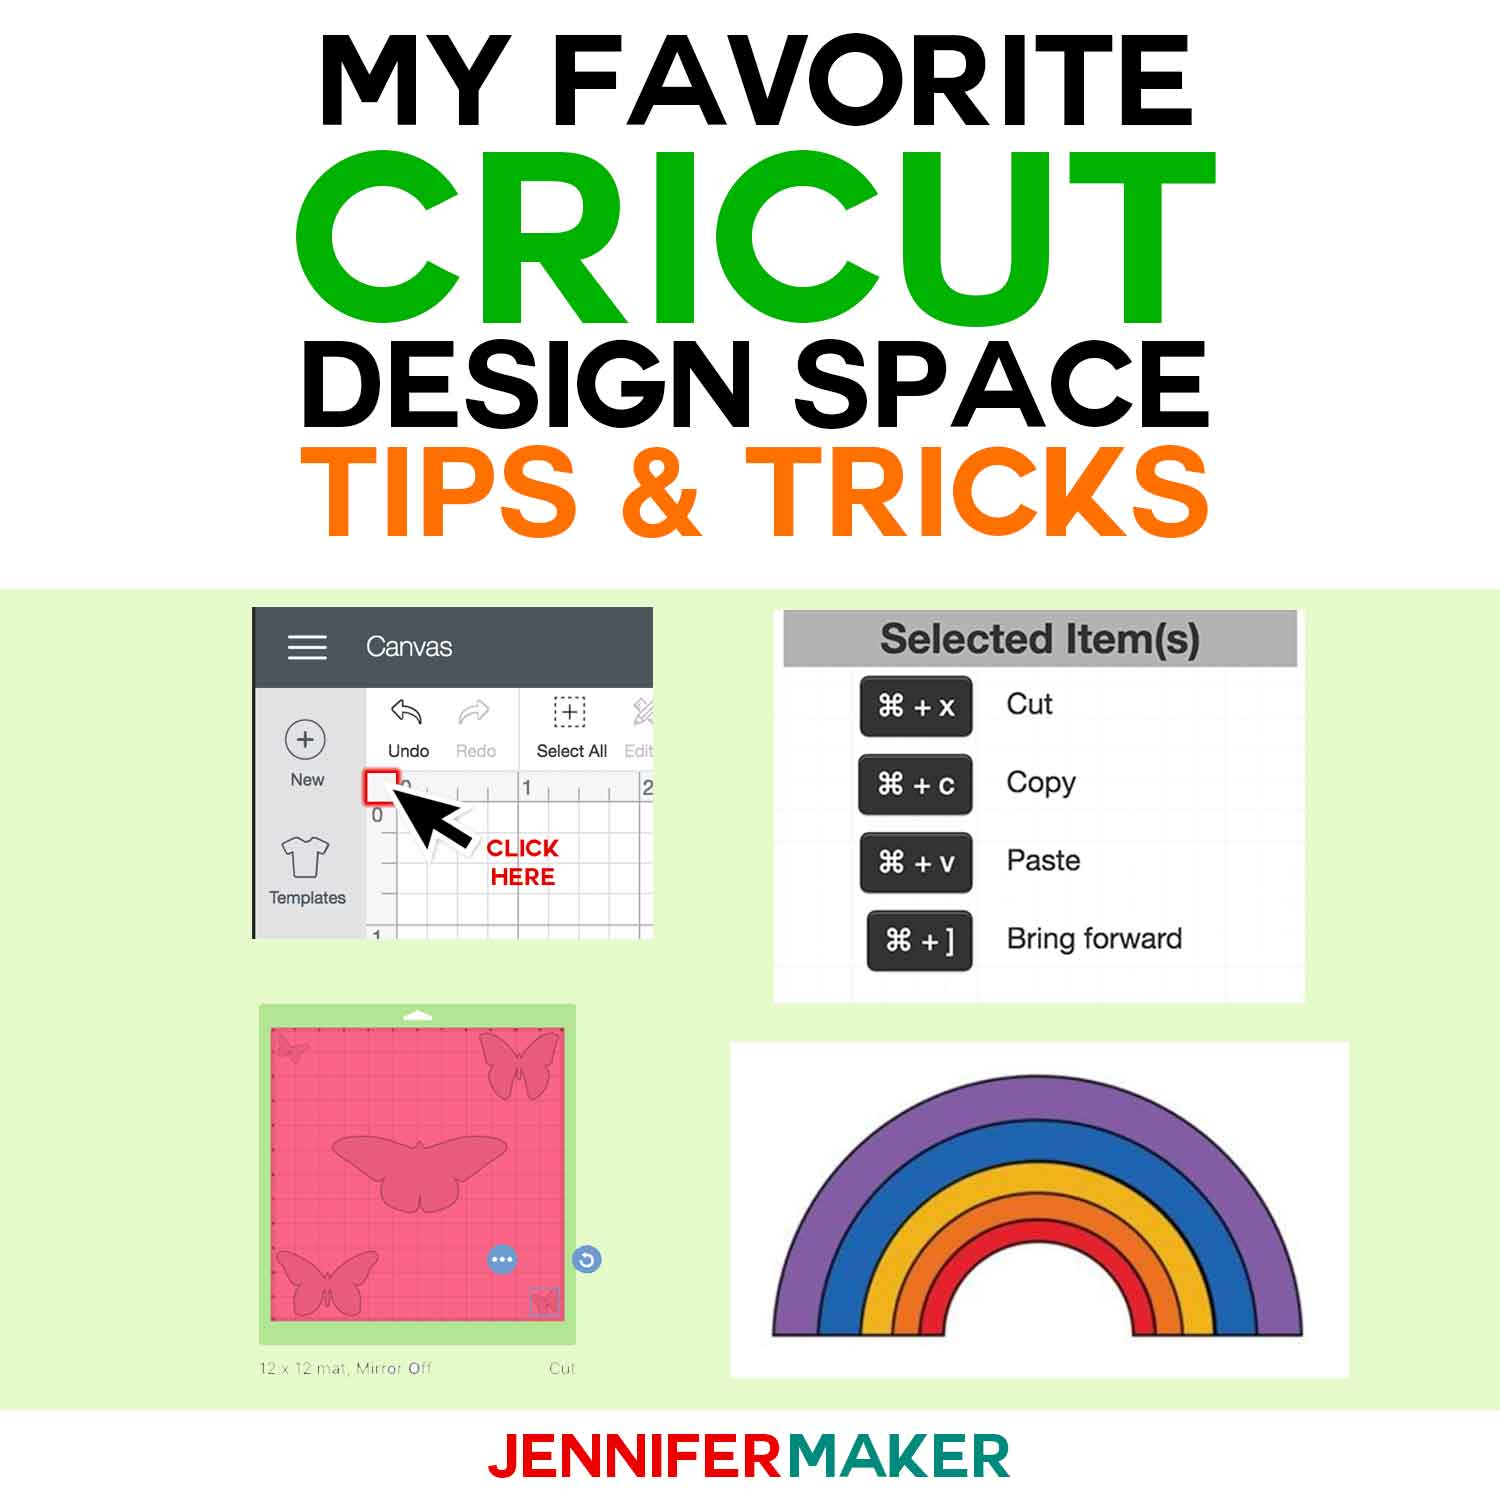 Cricut Design Space Tutorials, Tips & Tricks - Jennifer Maker